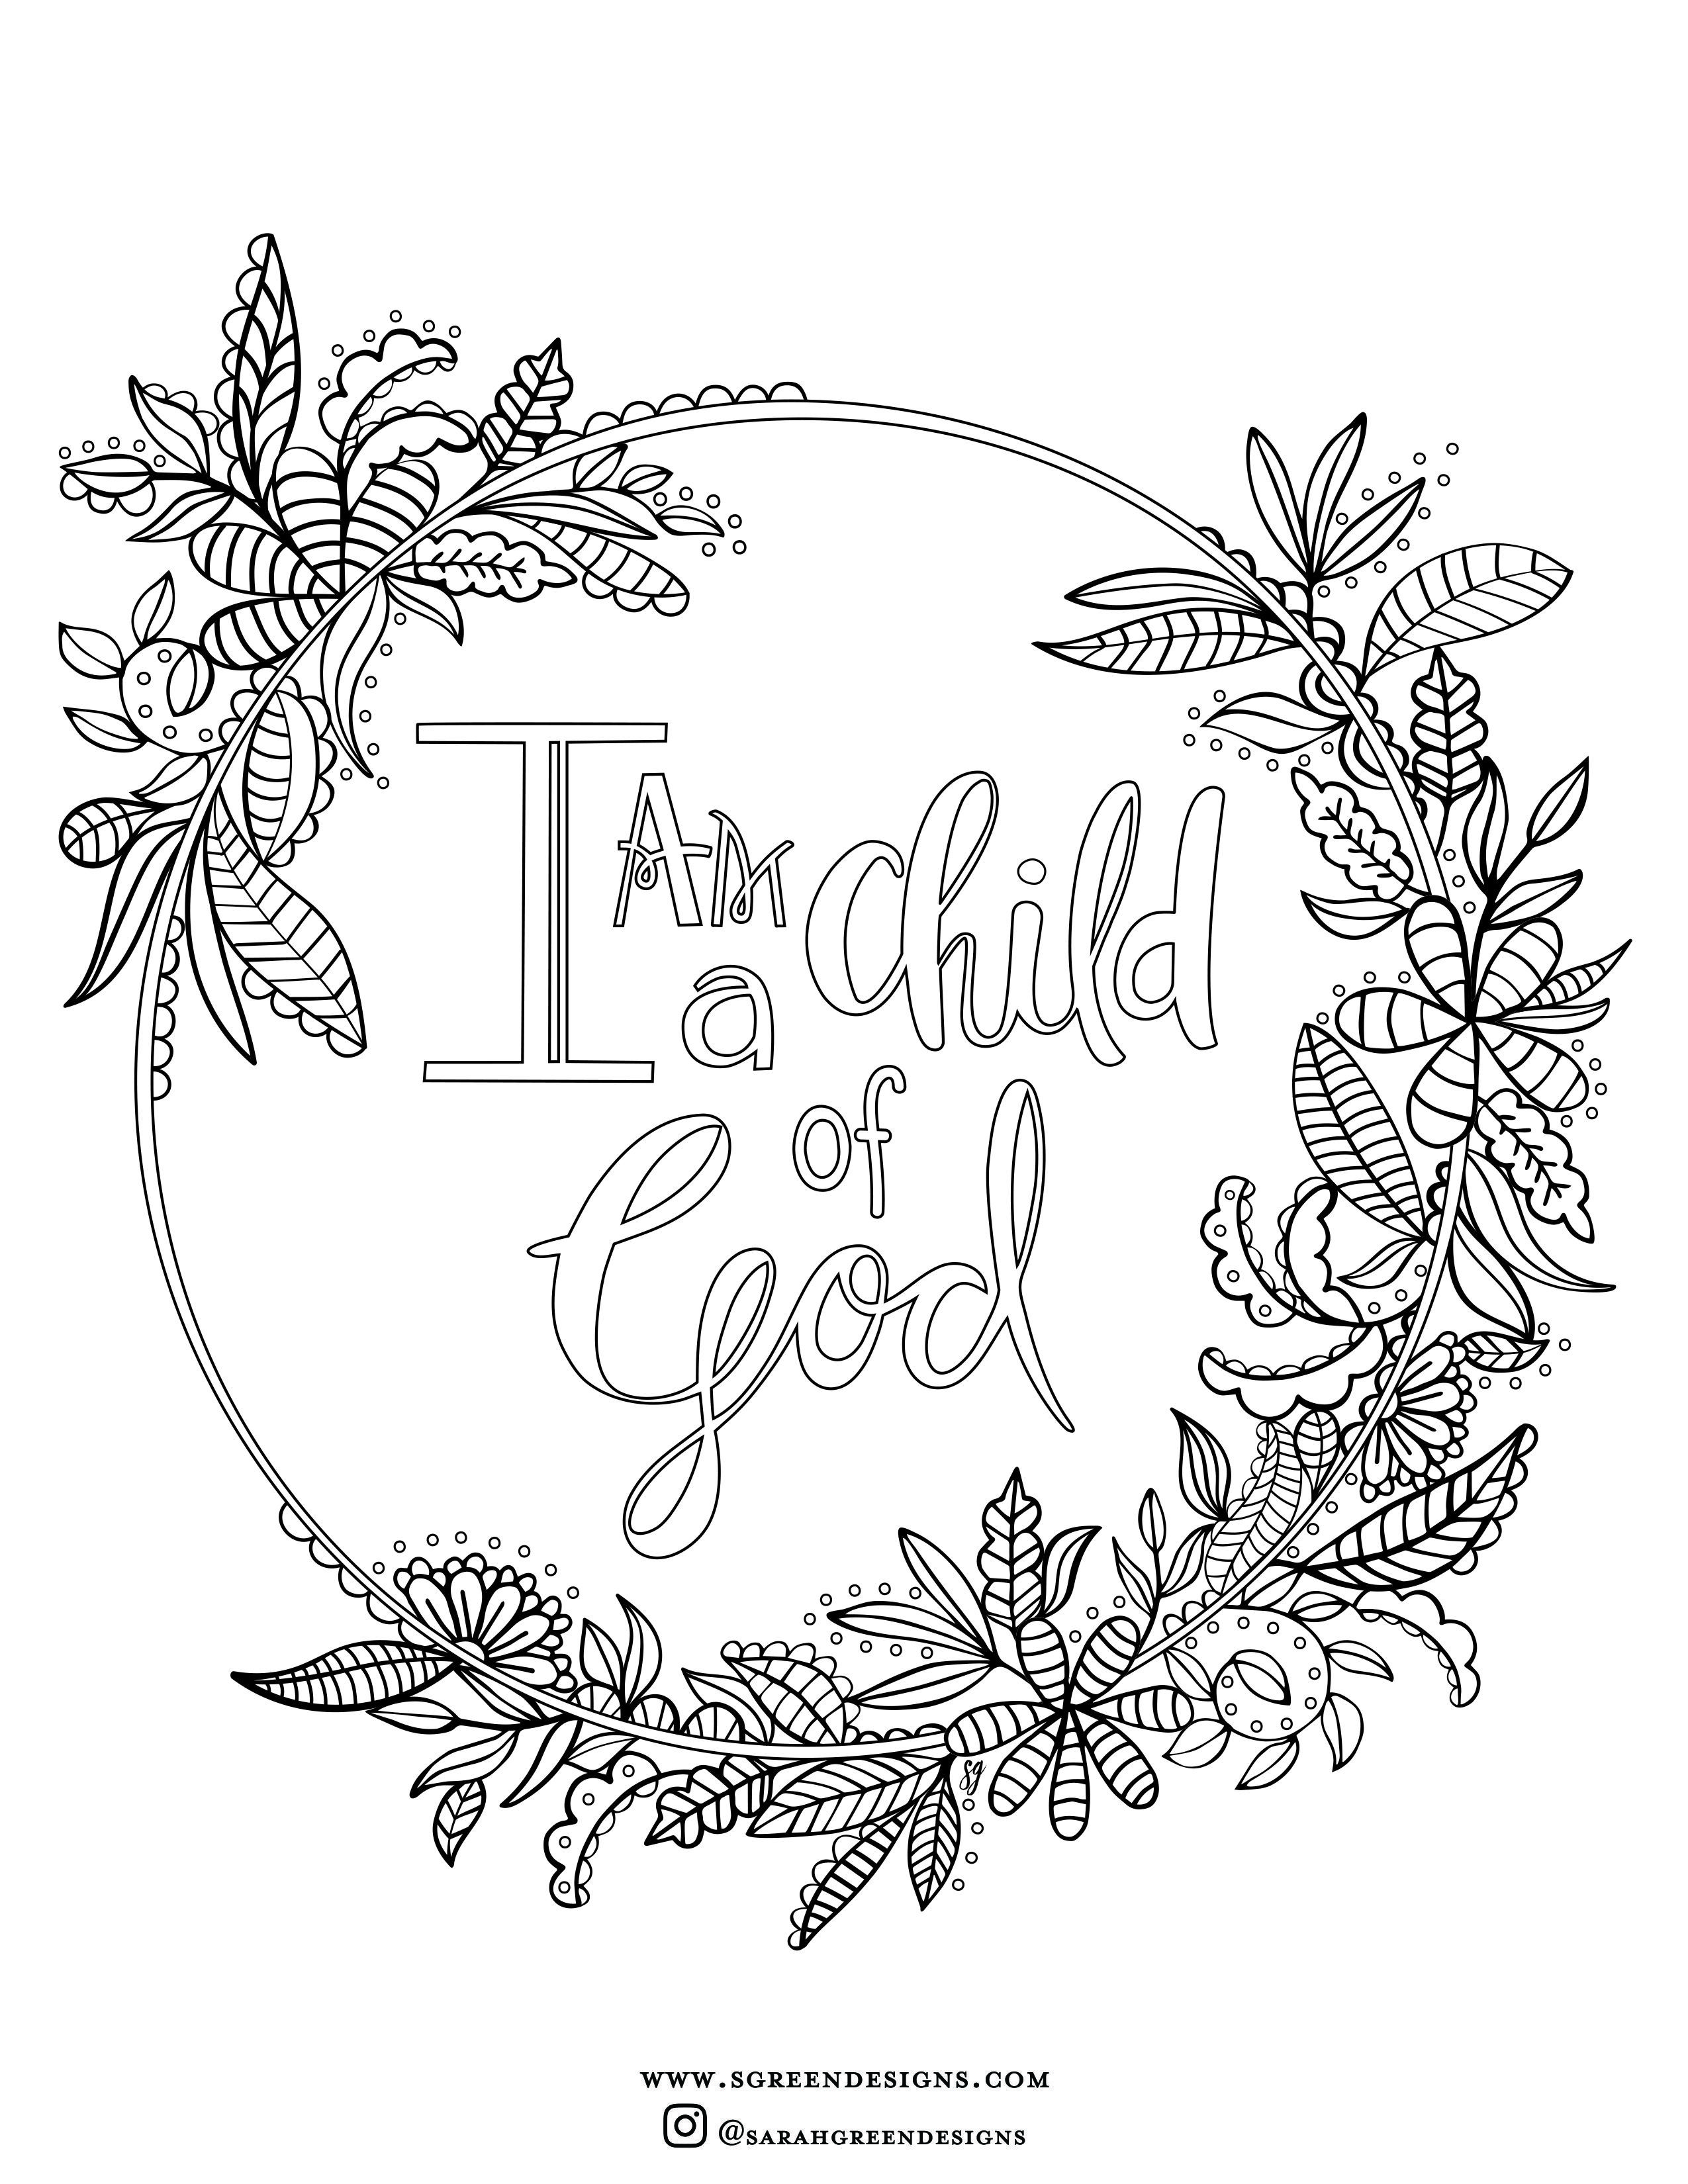 Best Photo Lds Coloring Pages Popular The Beautiful Factor Concerning Color Is It Is As Basic In 2021 Bible Verse Coloring Page Bible Coloring Christian Coloring Book [ 3300 x 2550 Pixel ]